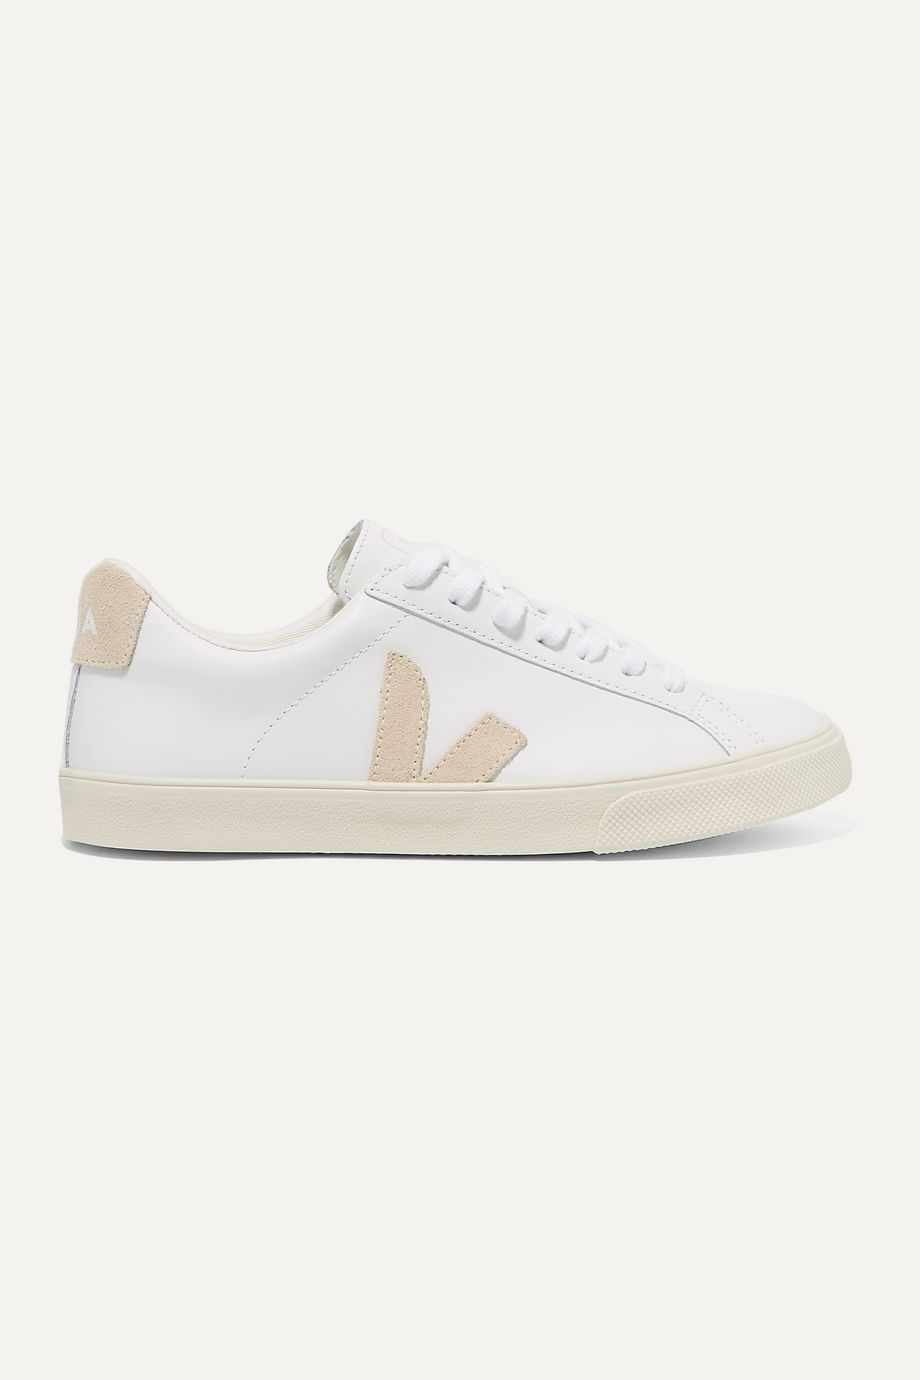 Veja + NET SUSTAIN Esplar leather and suede sneakers